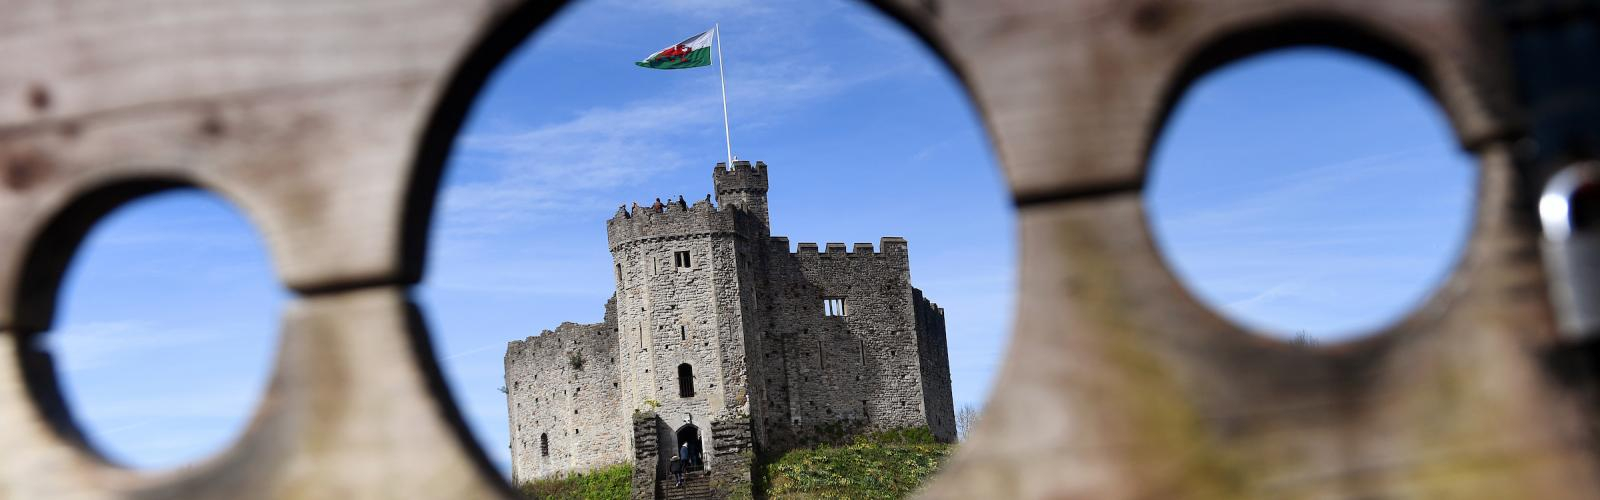 Cardiff Castle - Irish Rugby Tours, Activities for Thrill Seekers